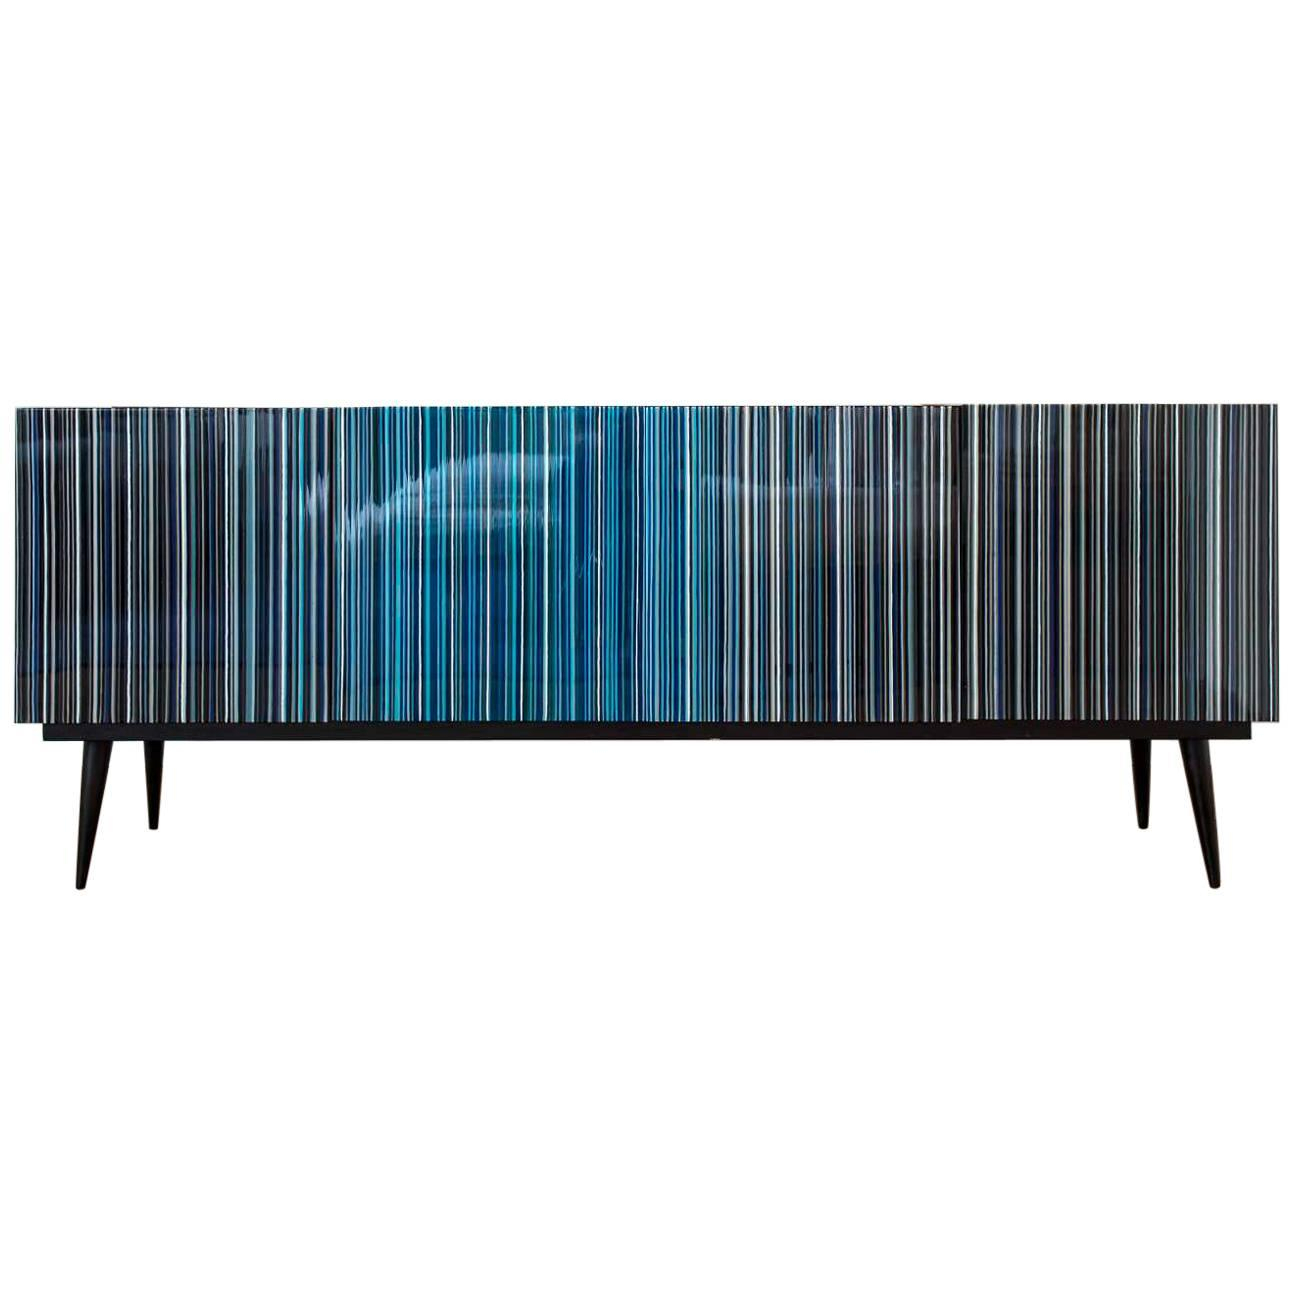 Retro Style Buffet Credenza, Barcode Design In Colored Glass, Black In  Turquoise Throughout Blue Stained Glass Credenzas (Gallery 3 of 30)